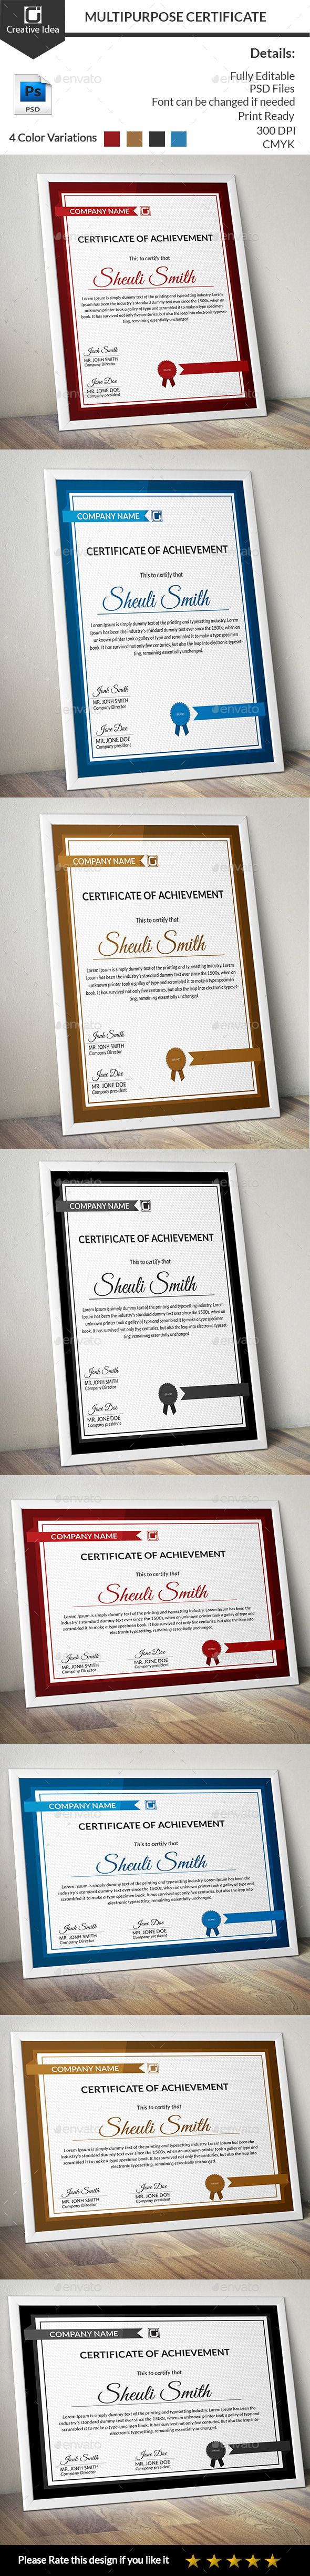 Best 25 certificate design ideas on pinterest certificate multipurpose certificate certificate designcertificate yadclub Choice Image